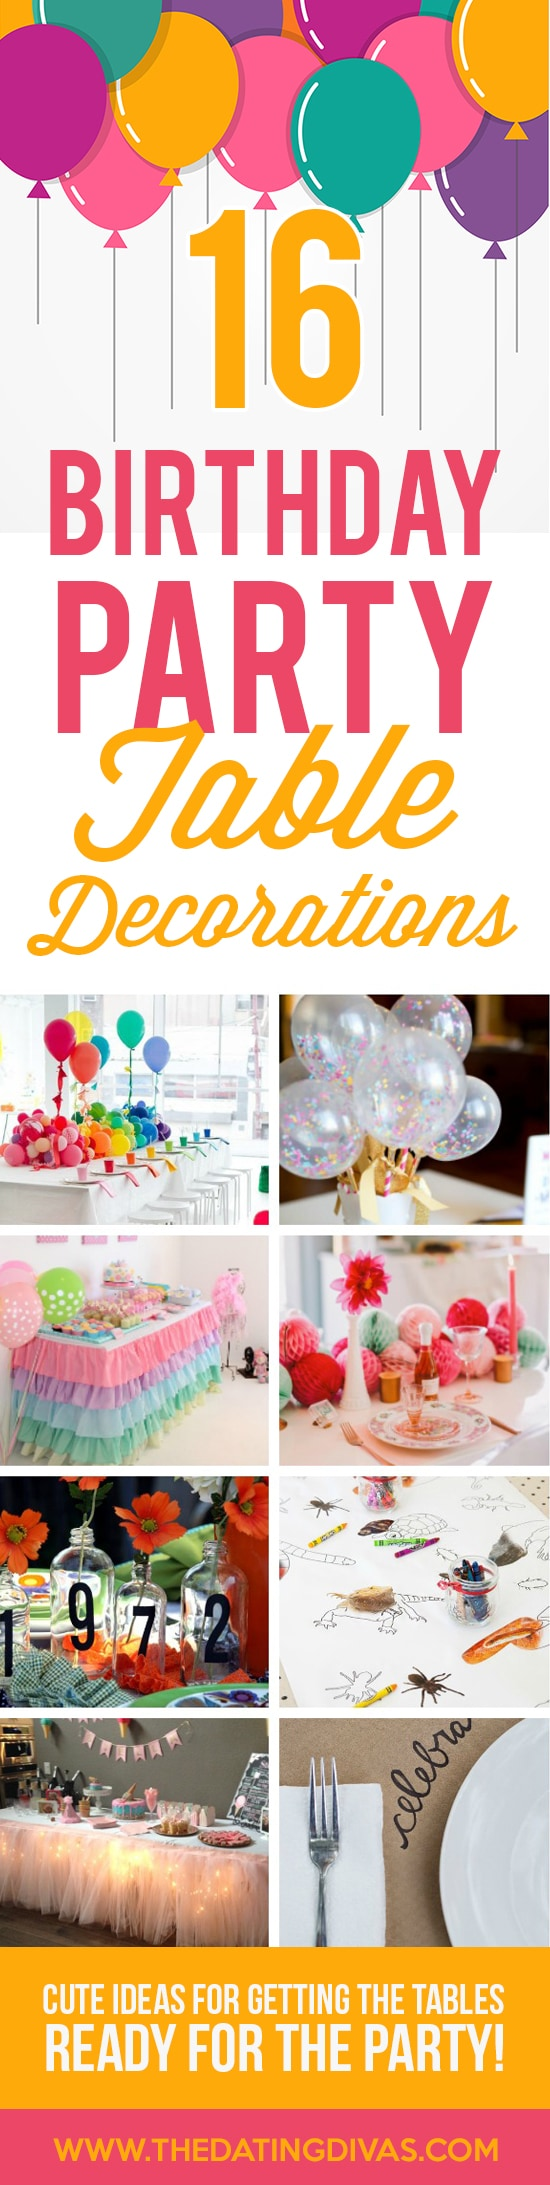 Birthday Party Table Decorations Banner